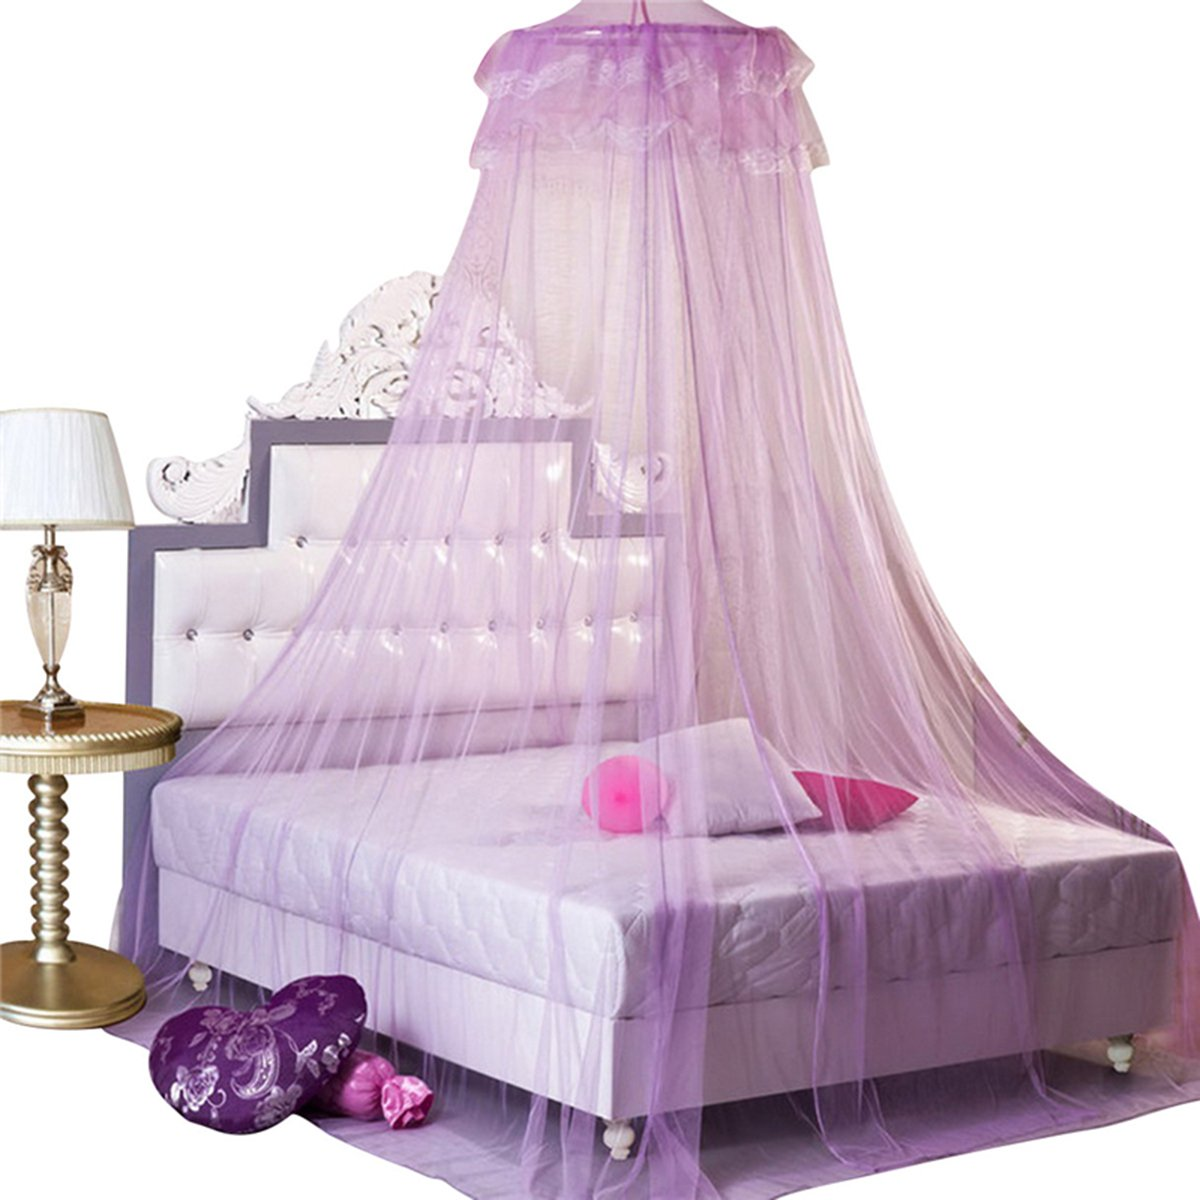 Leegoal New Round Lace Curtain Dome Bed Canopy Netting Princess Mosquito Net (Purple) Housweety HOUSWEETYG00612